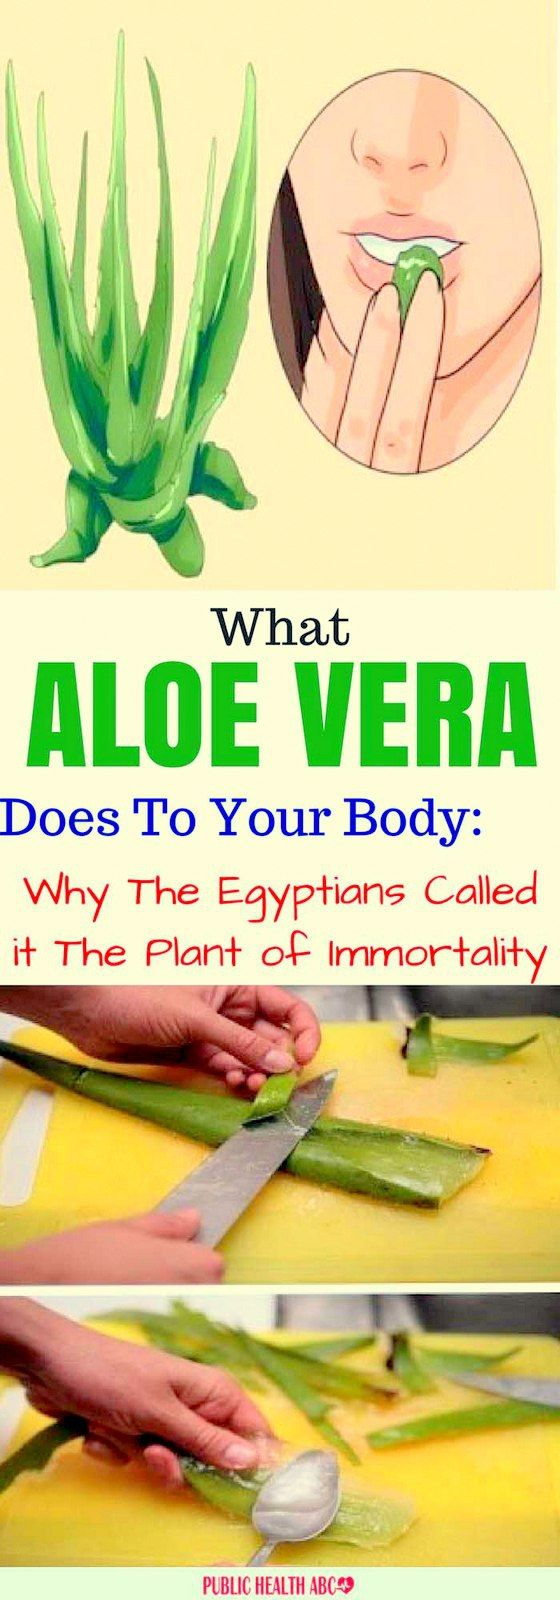 What Aloe Vera Does To Your Body: Why The Egyptians Called it The Plant of Immortality!!!  #beautyti...